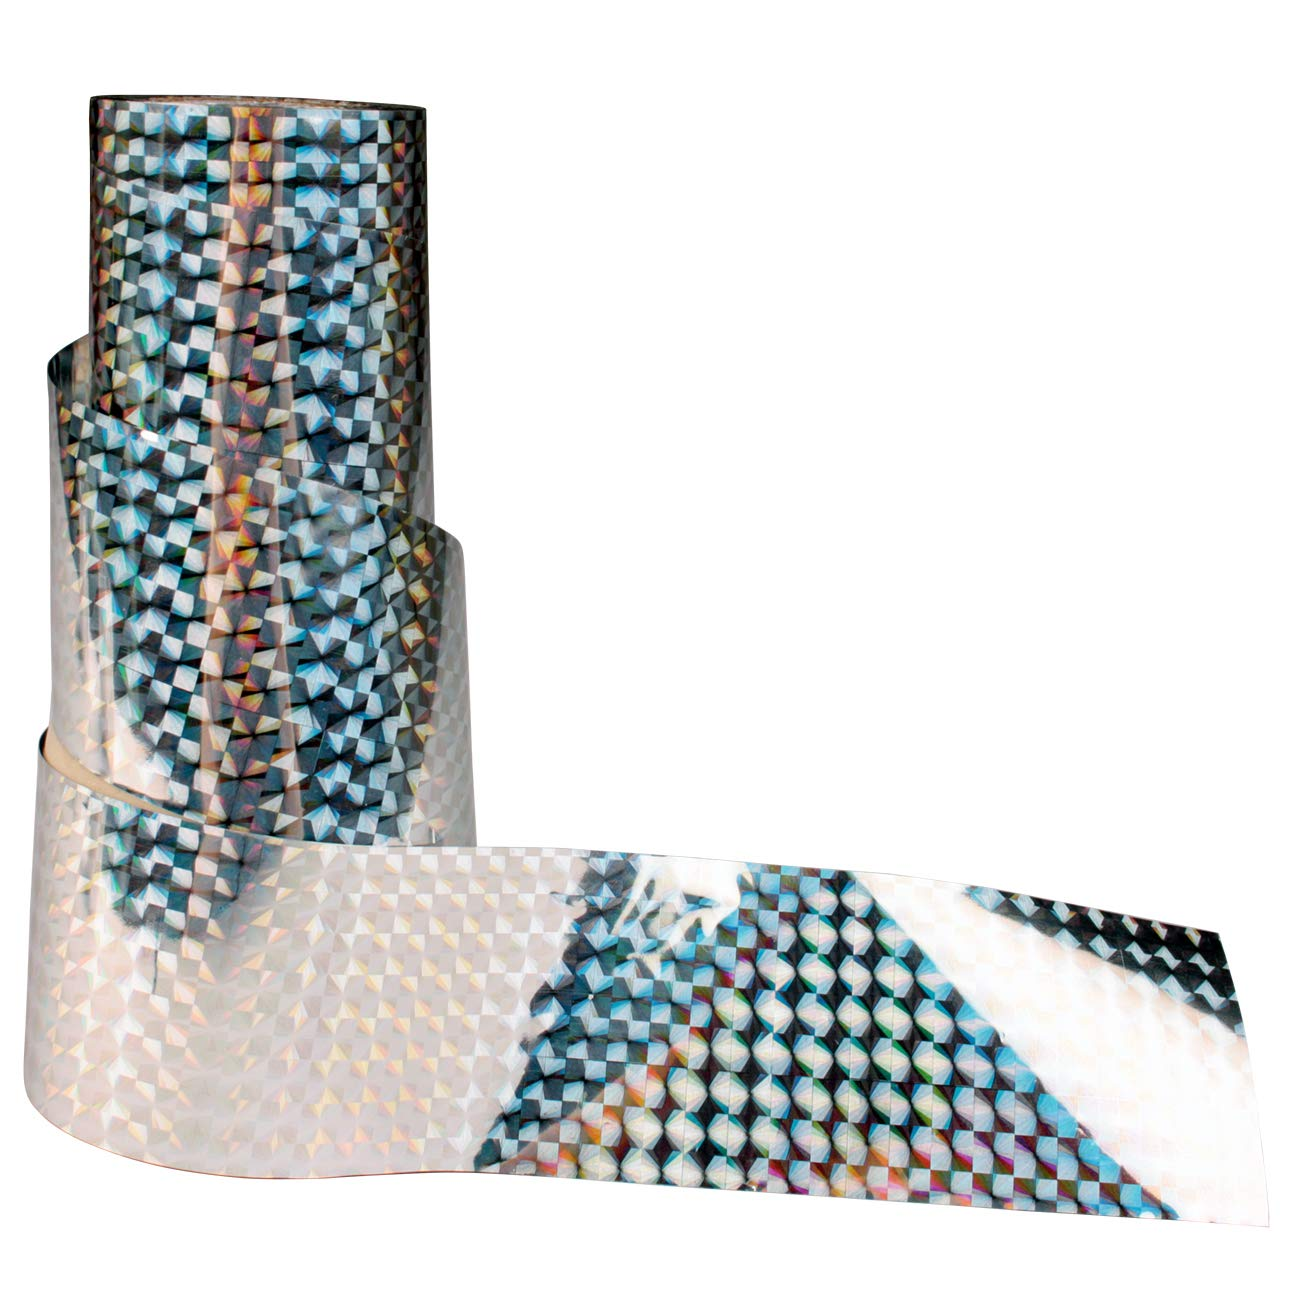 Bird Repellent Scare Tape - Keep Away Pigeons, Ducks, Crows and More - Deterrent Works with Netting And Spikes - 350ft De-Bird